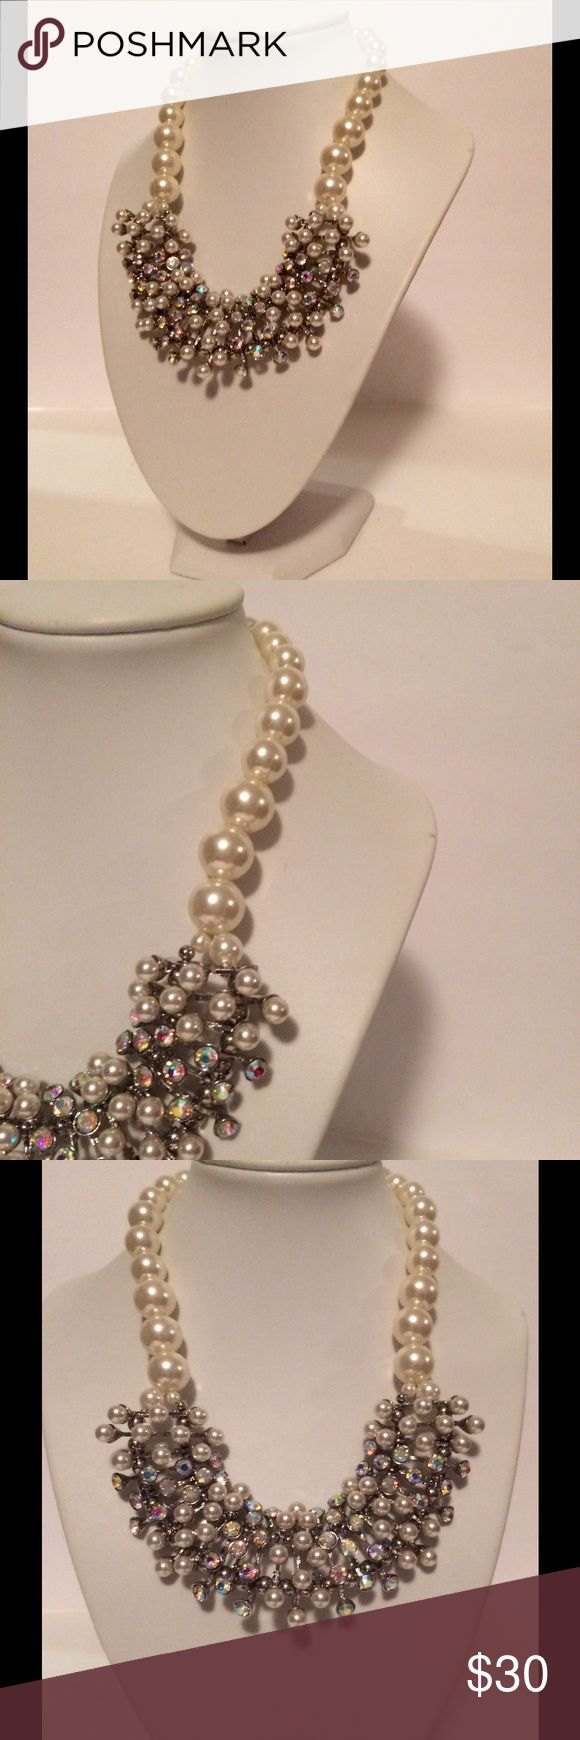 Traci Lynn Pearl Gemstone Statement Necklace Beautiful statement necklace by Traci Lynn.  Simulated pearls and stones.  Silver tone.  A stunning accessory! Traci Lynn Jewelry Necklaces